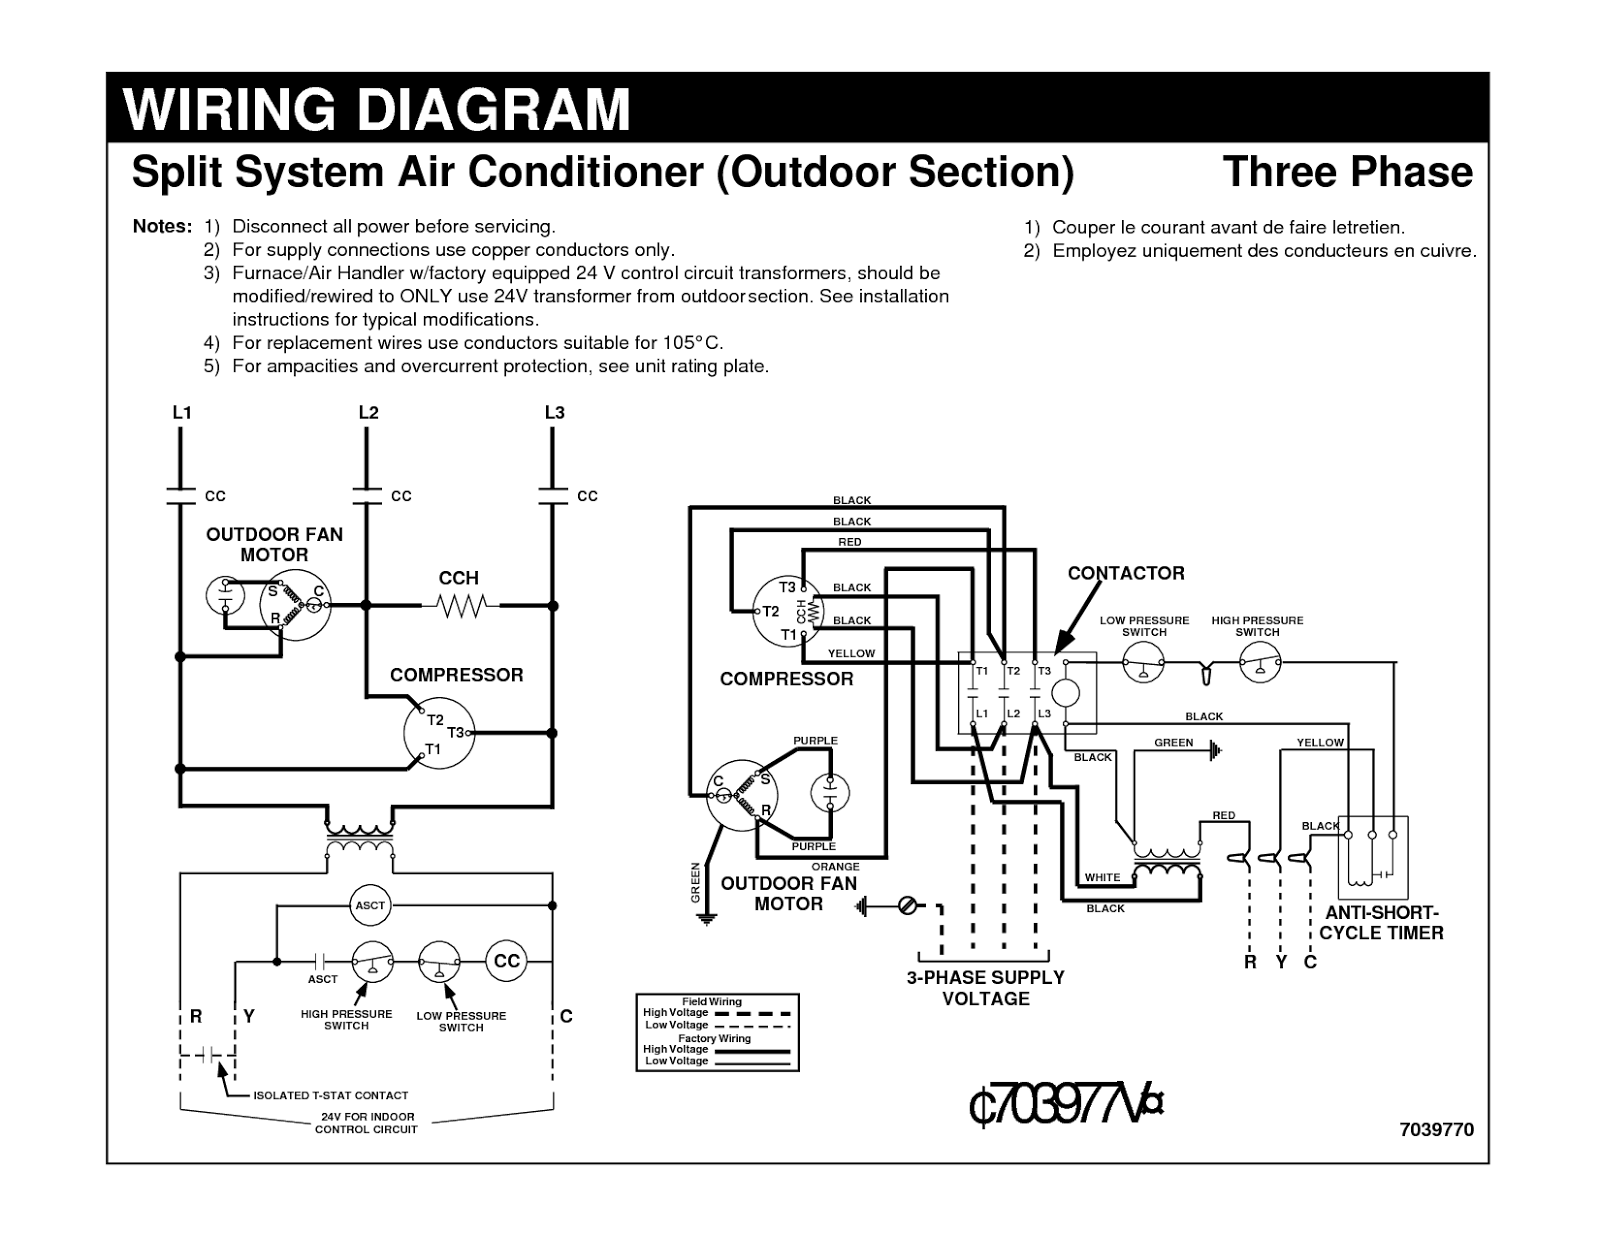 wiring+diagram+in+the+user+manual electrical wiring diagrams for air conditioning systems part one hvac wiring schematics at eliteediting.co